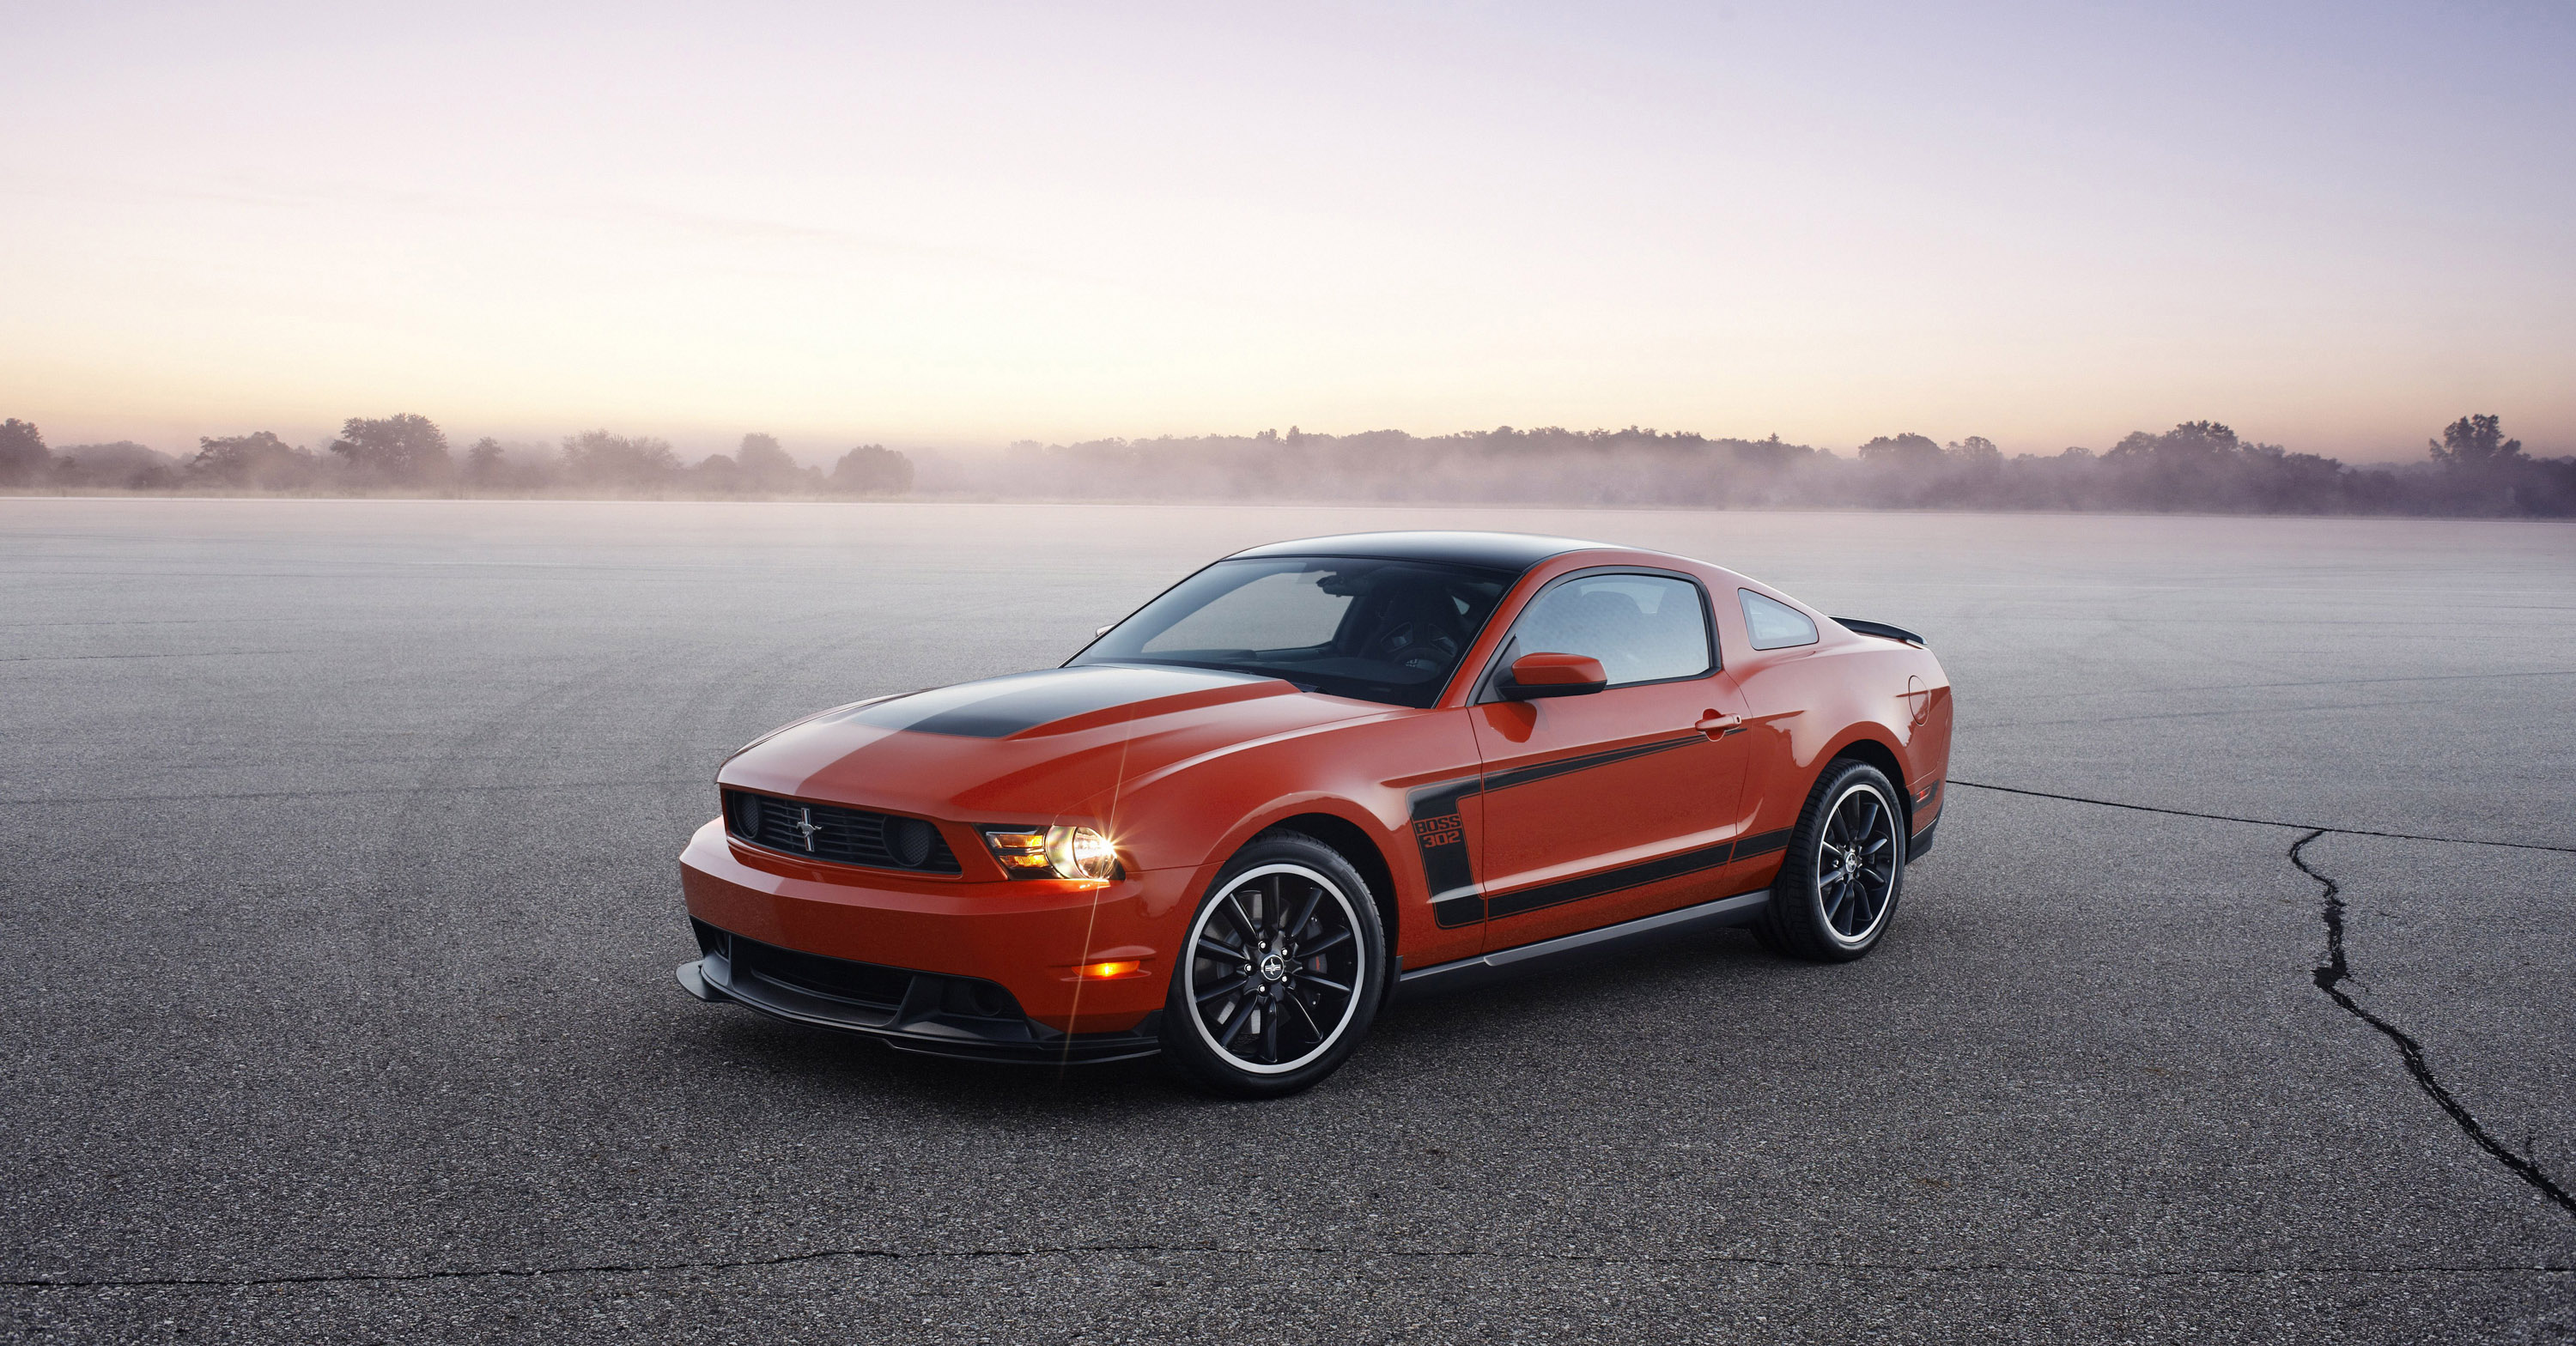 2012 Ford Mustang Boss 302 and Boss 302 Laguna Seca will join